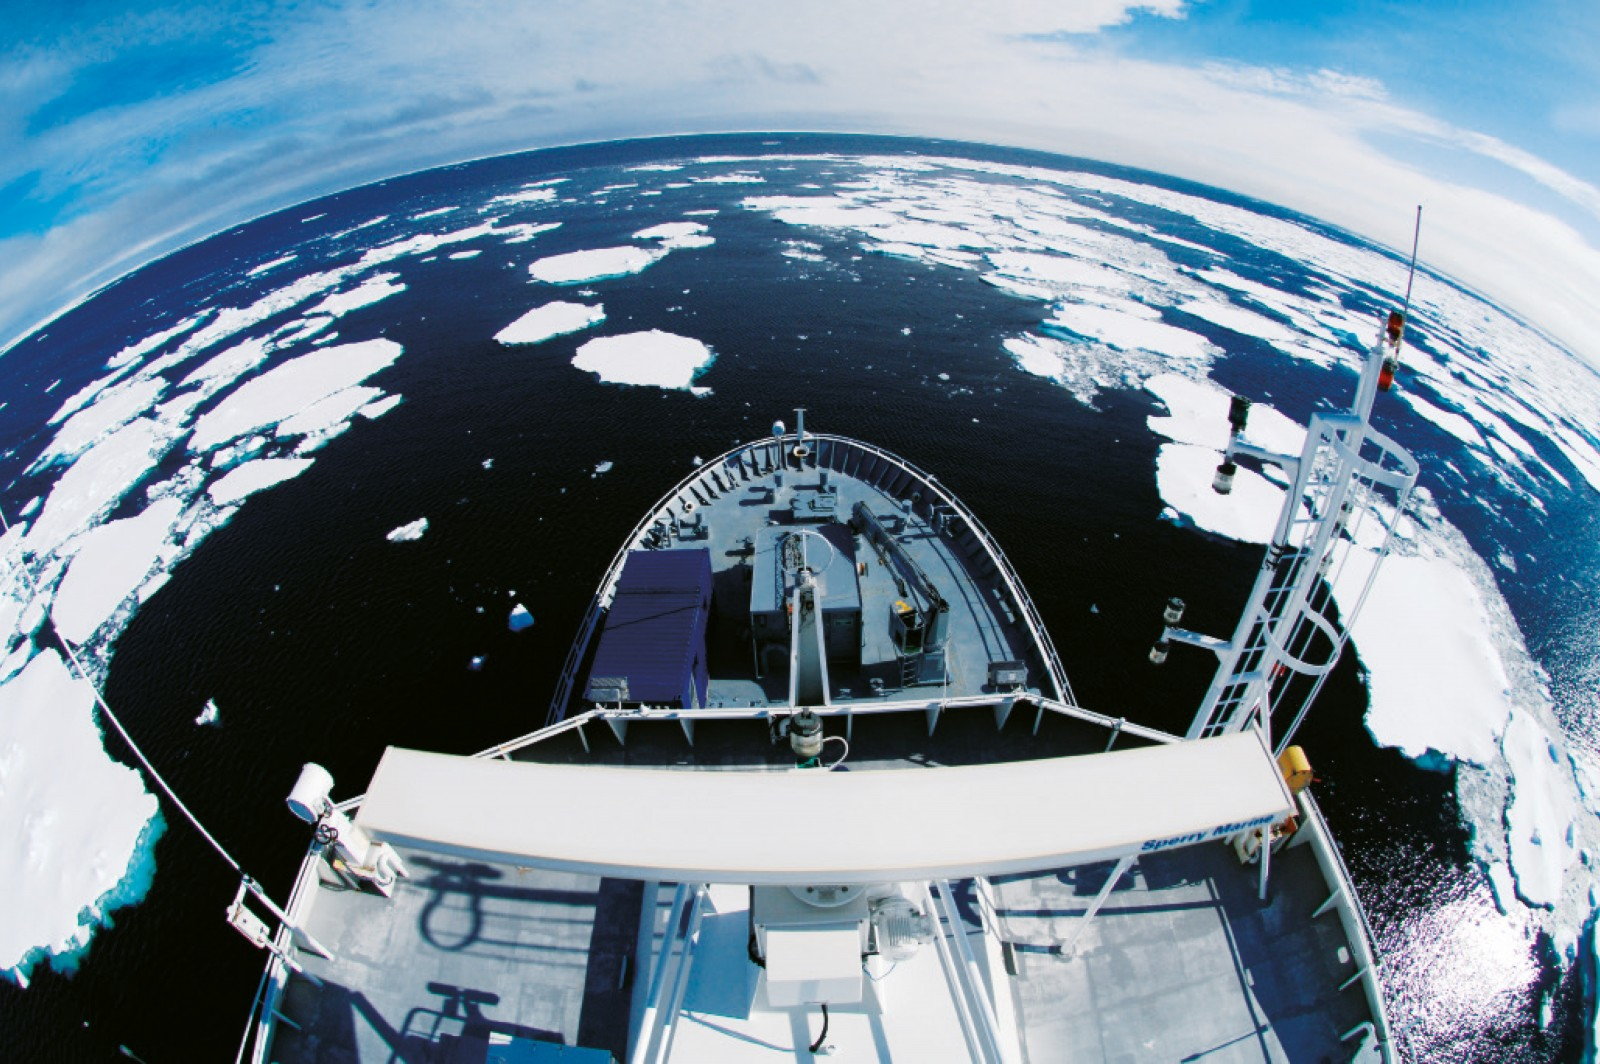 Viewed from the radar mast of the NIWA research vessel Tangaroa, the Ross Sea is a patchwork of shattered floes. Covered for nine months of the year in a crust of ice up to two metres thick, channels form in summer triggering an explosion of phytoplankton that rains detritus and nutrients through the water column into the depths beneath. These depths are a cold and unusual environment for life, an alien universe of creatures dependent on this hail of food in the summer, and devouring one another when the ice returns. On this voyage, the Tangaroa carried a multibeam echosounder, towed video and still cameras, trawl nets, a specialised benthic sled for sampling creatures living just above the seafloor, and a slew of equipment to collect plankton and measure salinity, temperature and chlorophyll levels